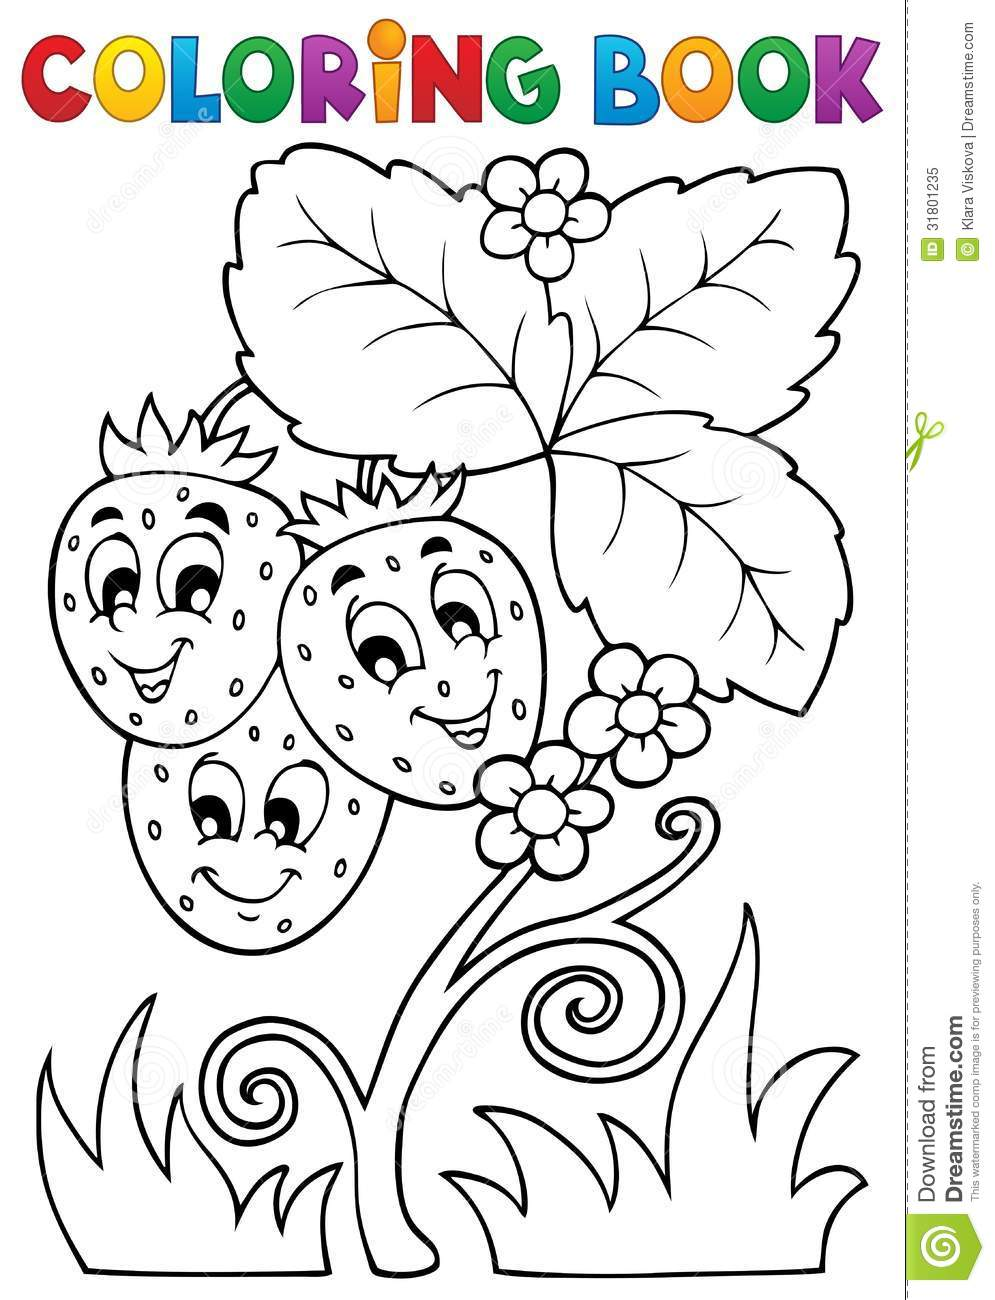 Coloring Book Fruit Theme 4 Stock Vector - Illustration of bloom ...